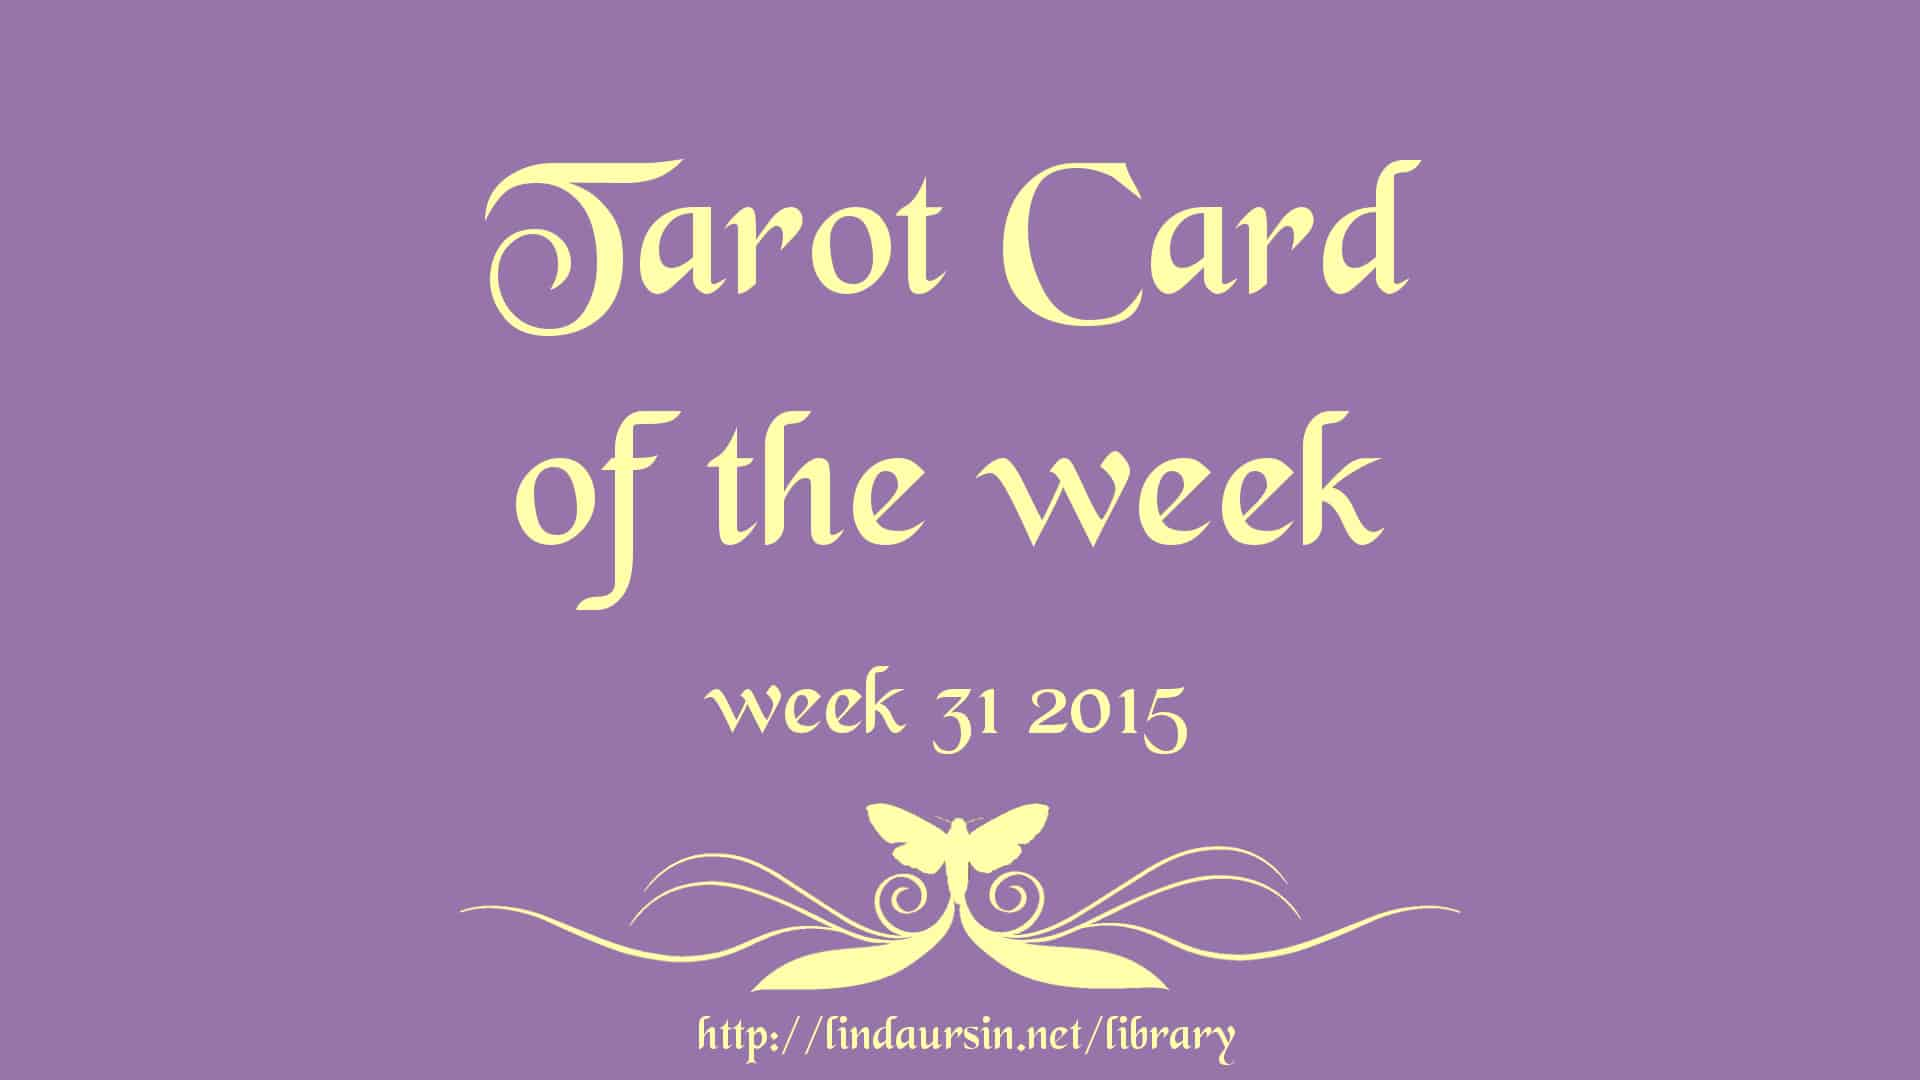 Your weekly Tarot card for week 31